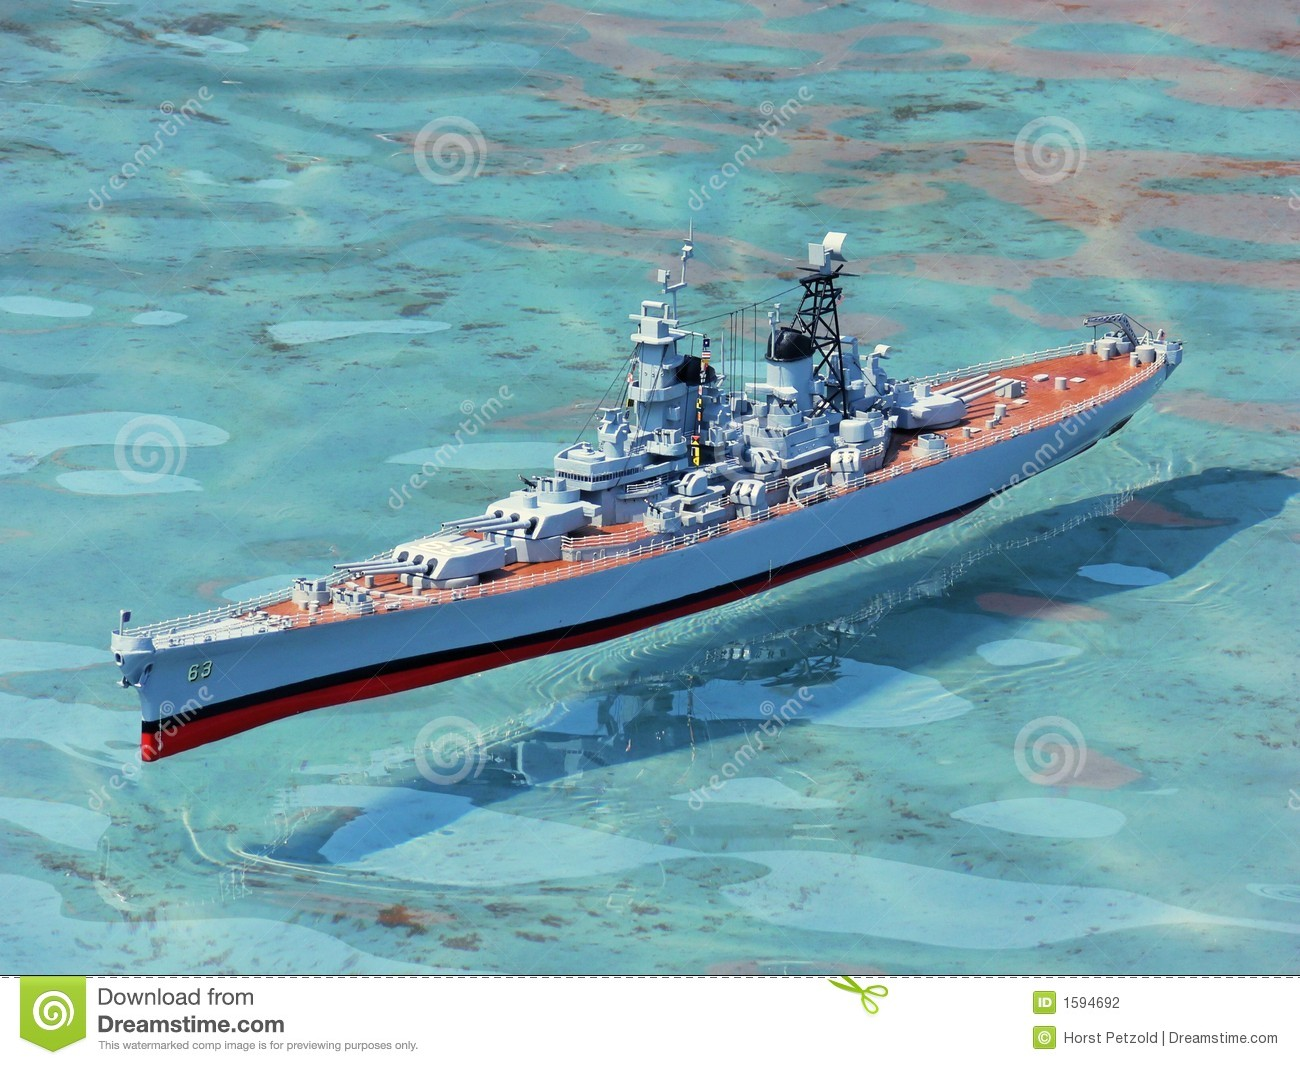 Model War Ship 20589 Stock Photography - Image: 1594692